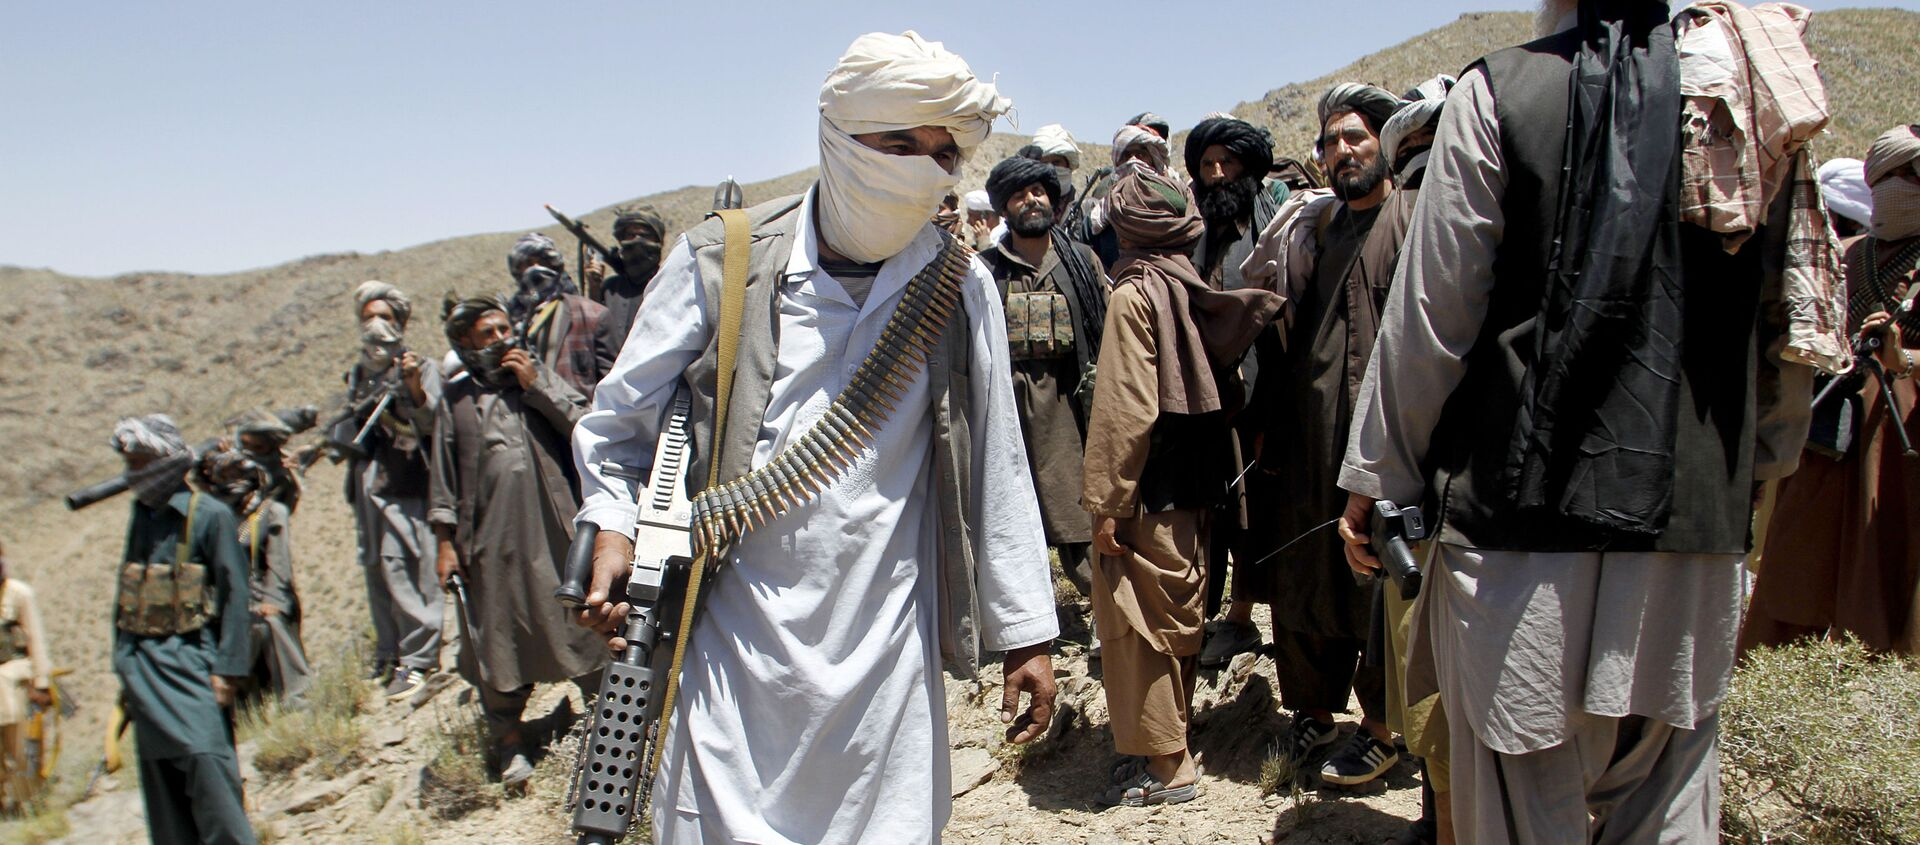 In this Friday, May 27, 2016 photo, members of a breakaway faction of the Taliban fighters walks during a gathering, in Shindand district of Herat province, Afghanistan - Sputnik International, 1920, 20.04.2021